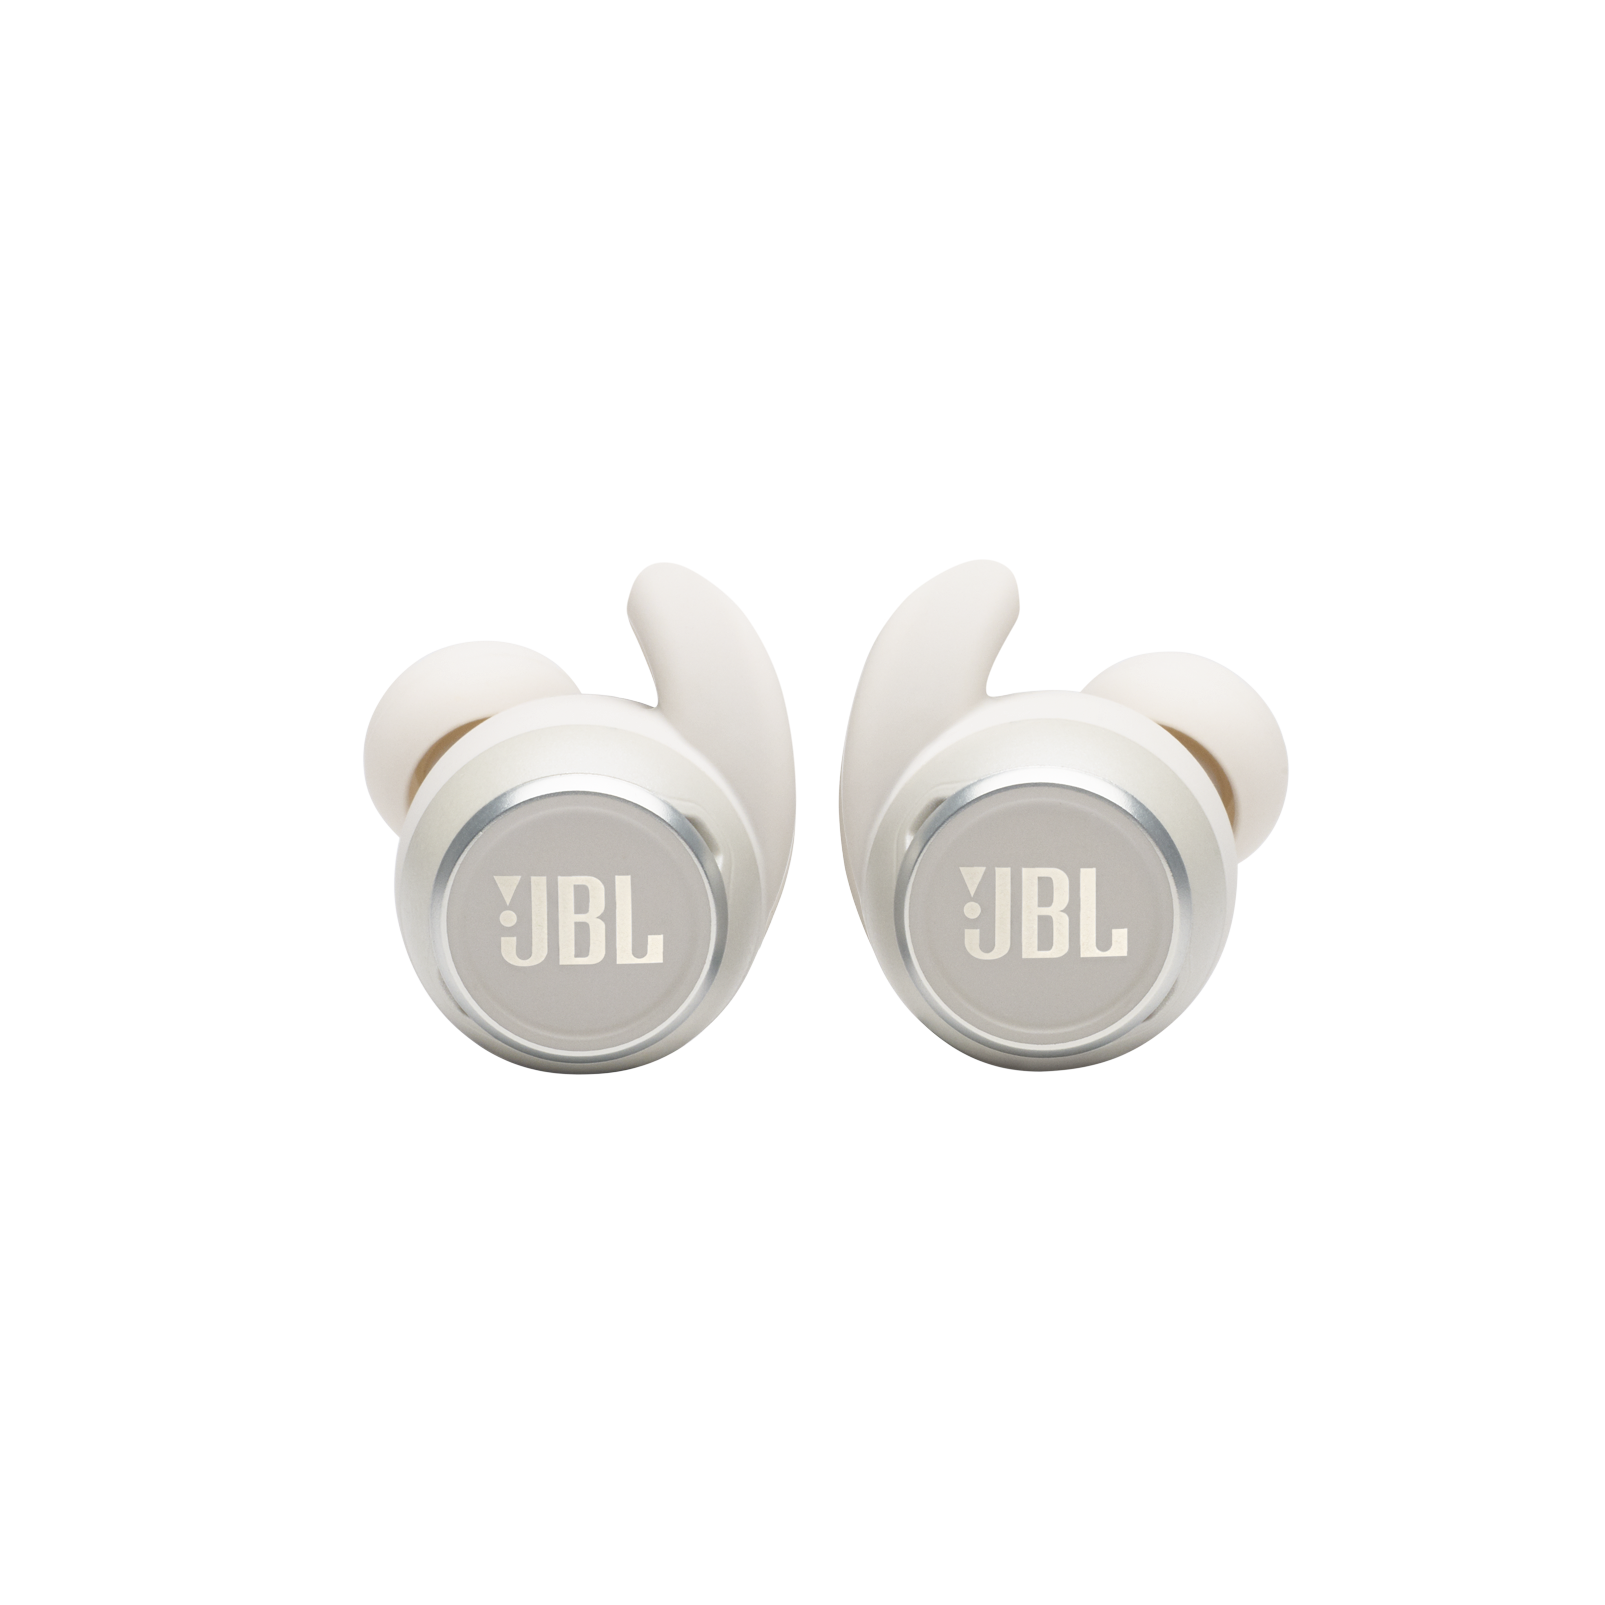 Купить JBL Earphone Refl Mini Nc  в Бишкеке